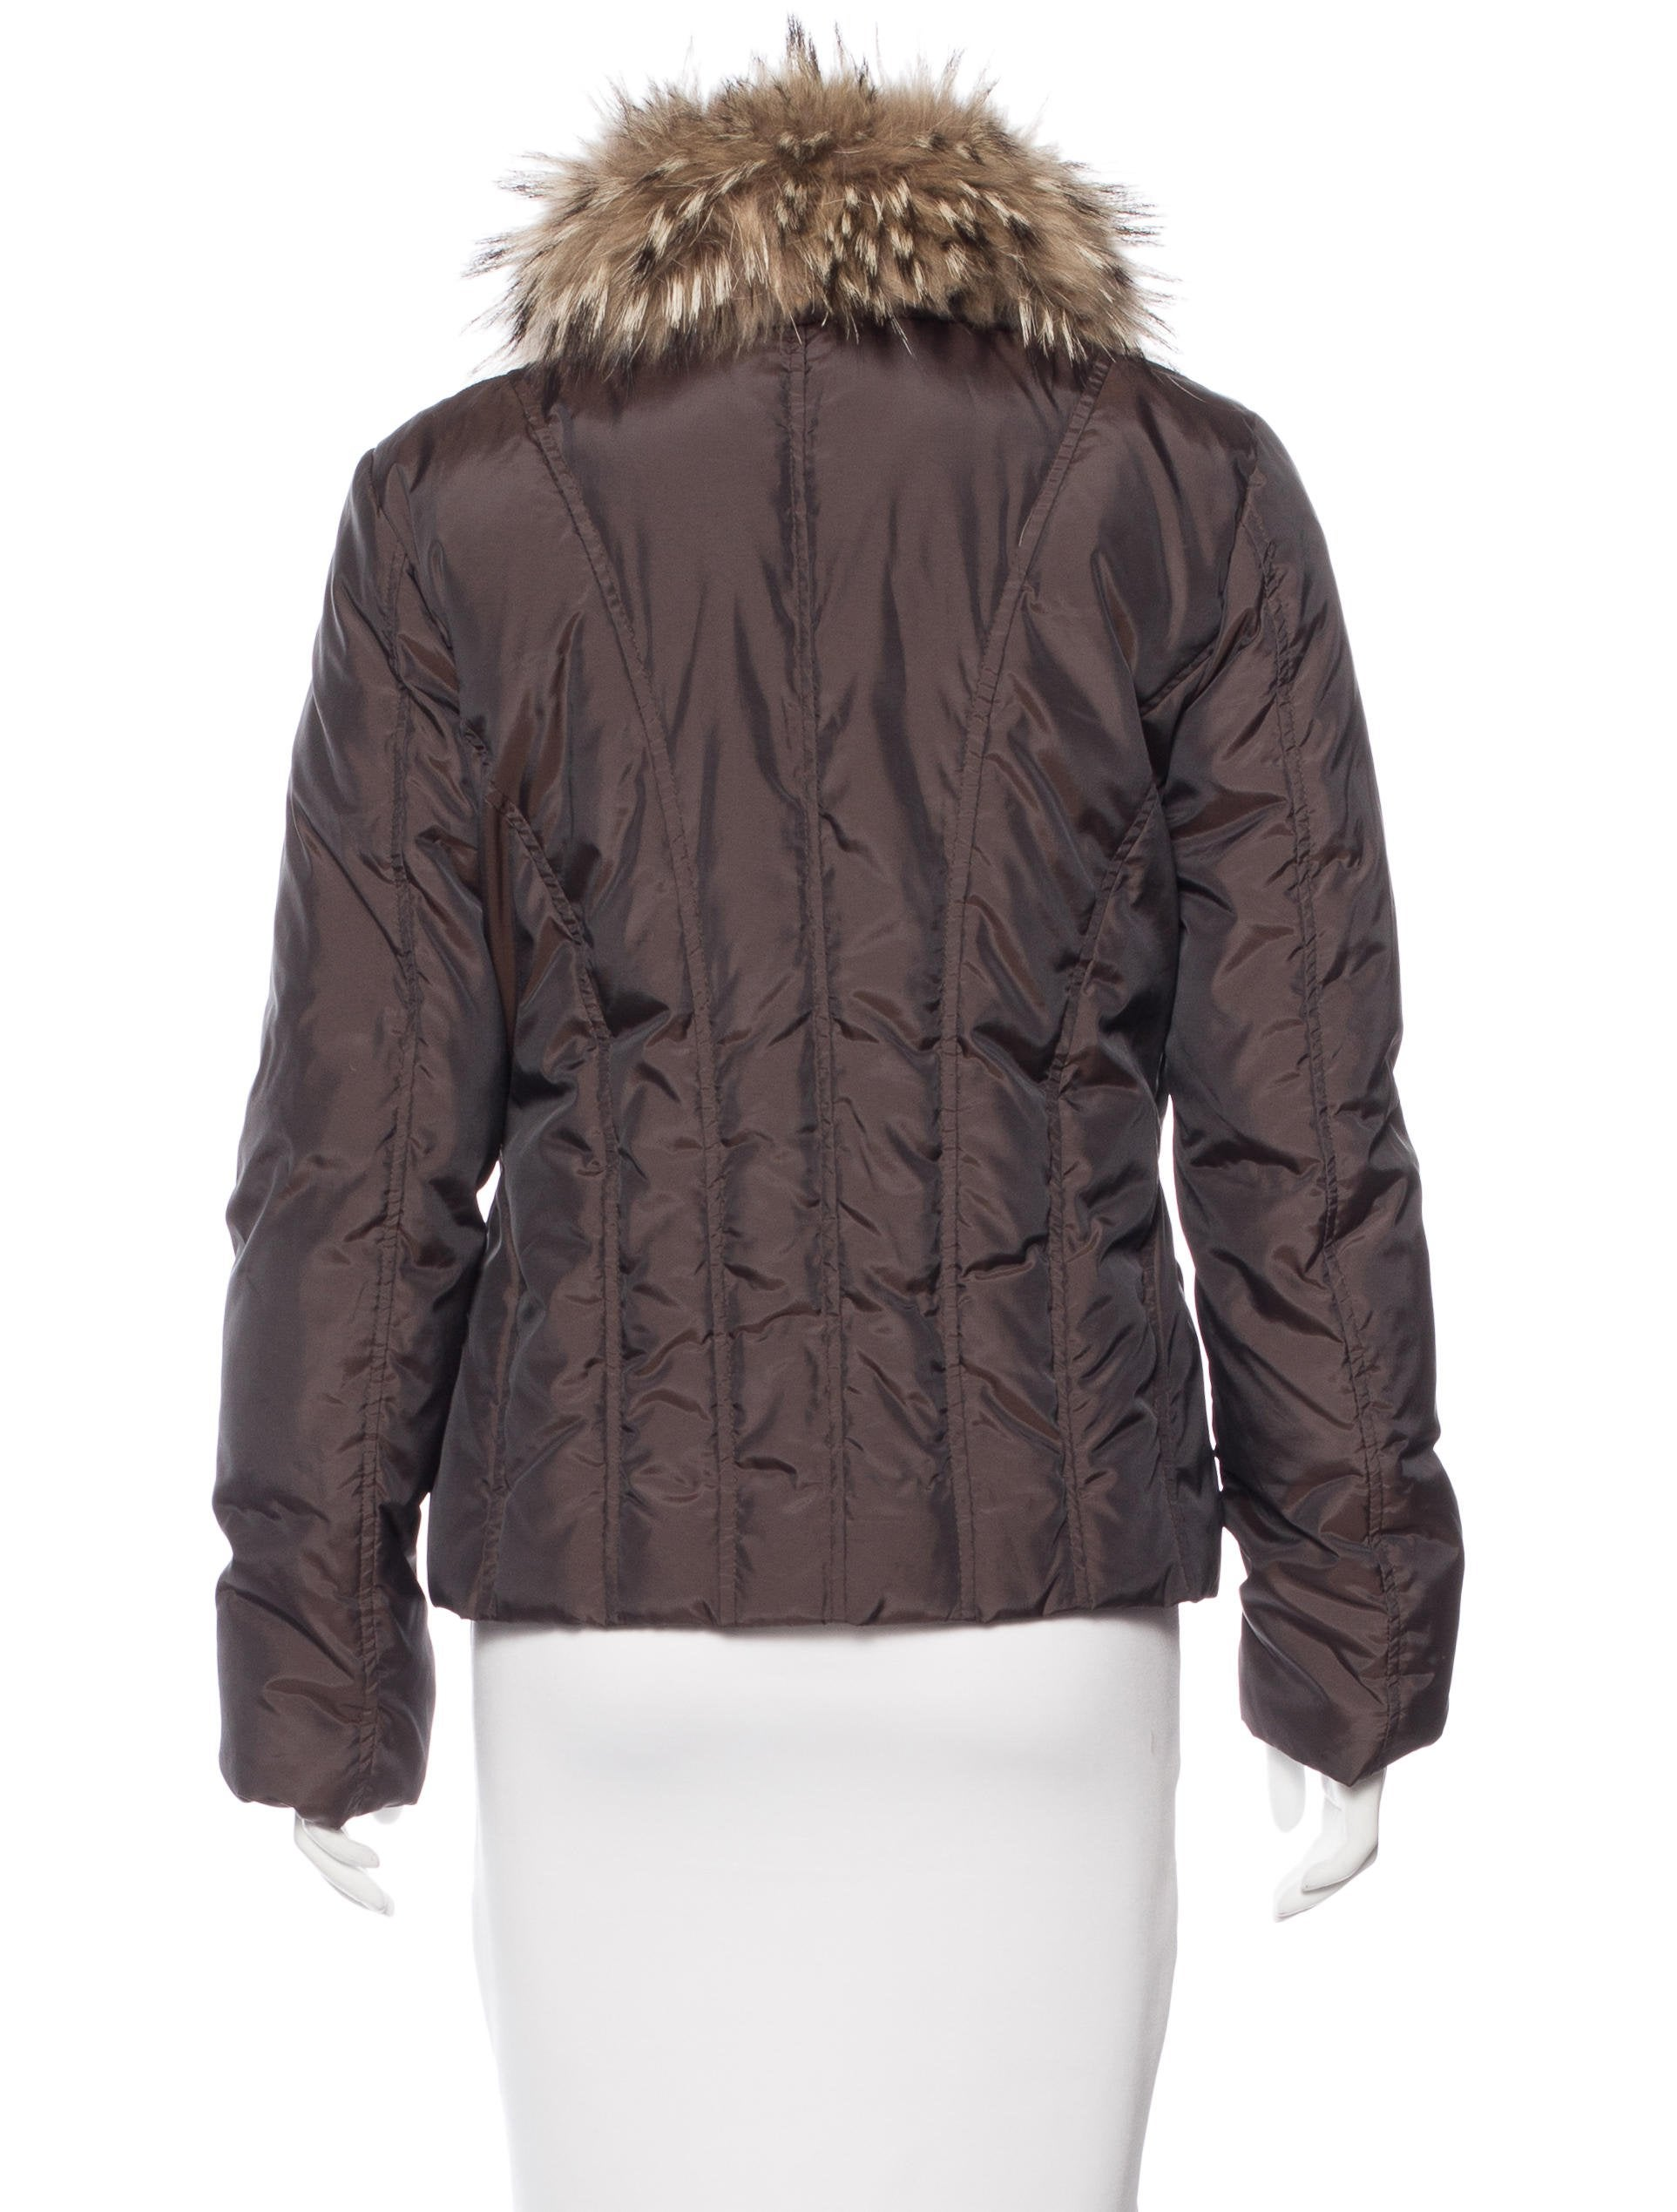 Shop men's coats from Burberry. The range includes both single-breasted and double-breasted designs alongside trench coats, parkas, and more. Faux Fur Trim Down-filled Hooded Parka. $1, Click the star icon to add this item to your Favourites. Click the star icon to remove this item from your Favourites. New in.